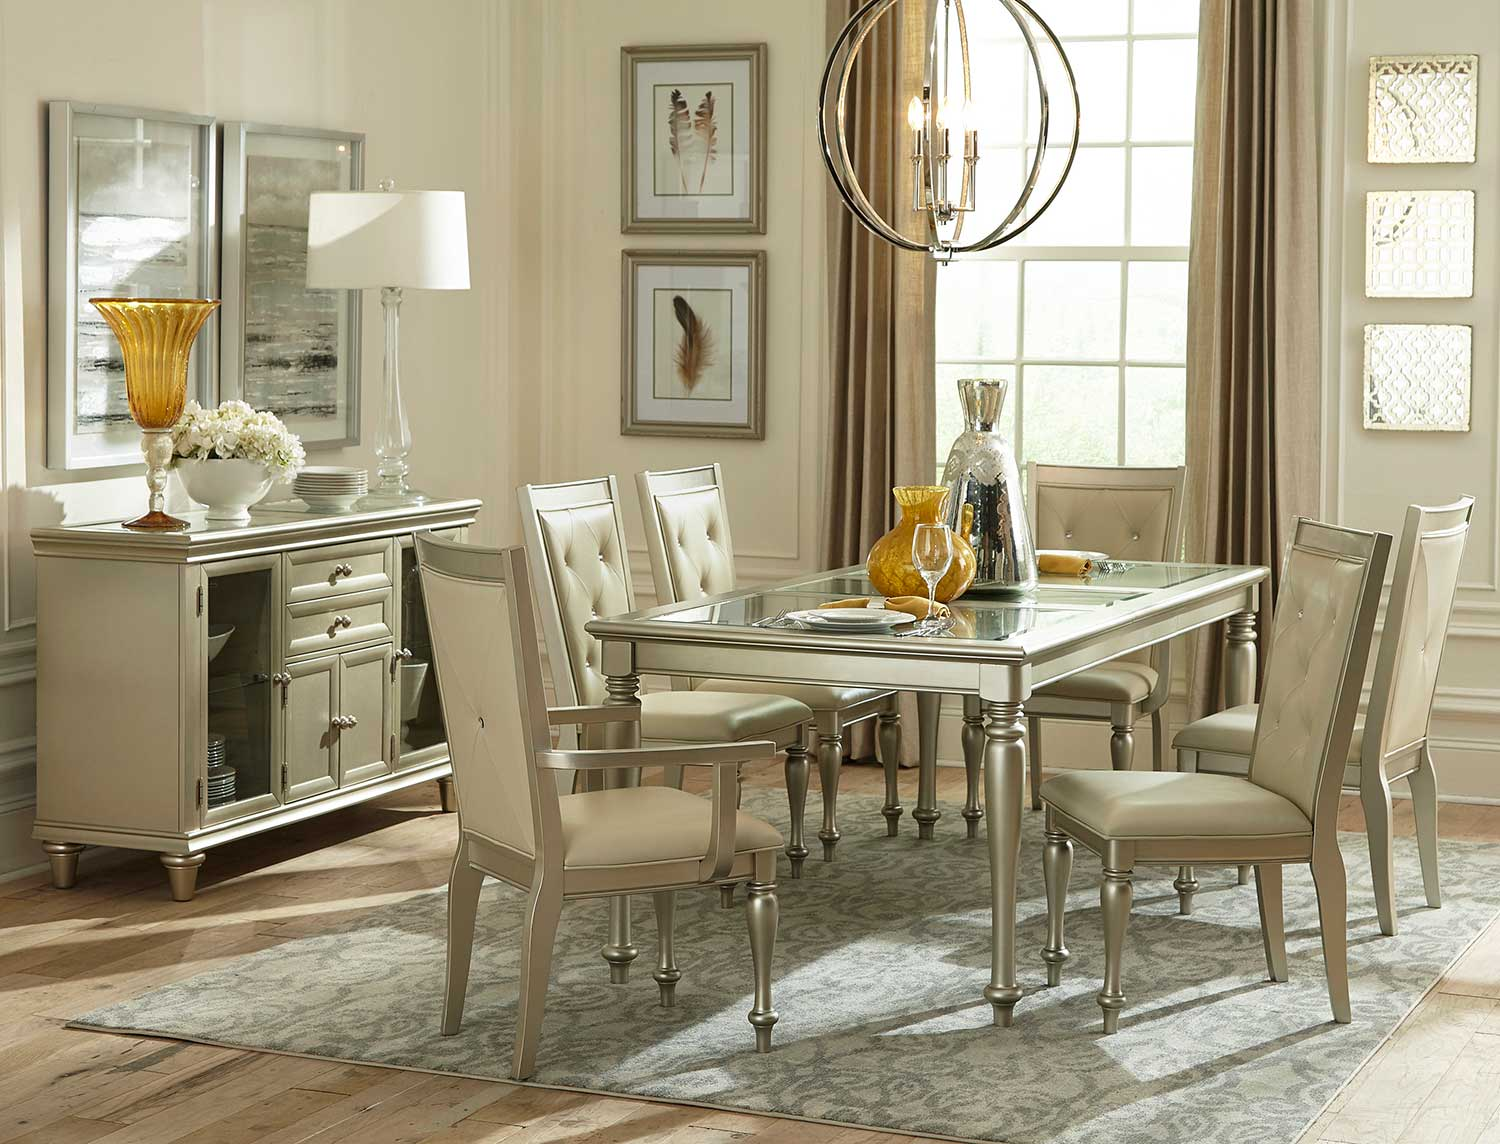 Homelegance Celandine Dining Set - Glass Insert - Silver